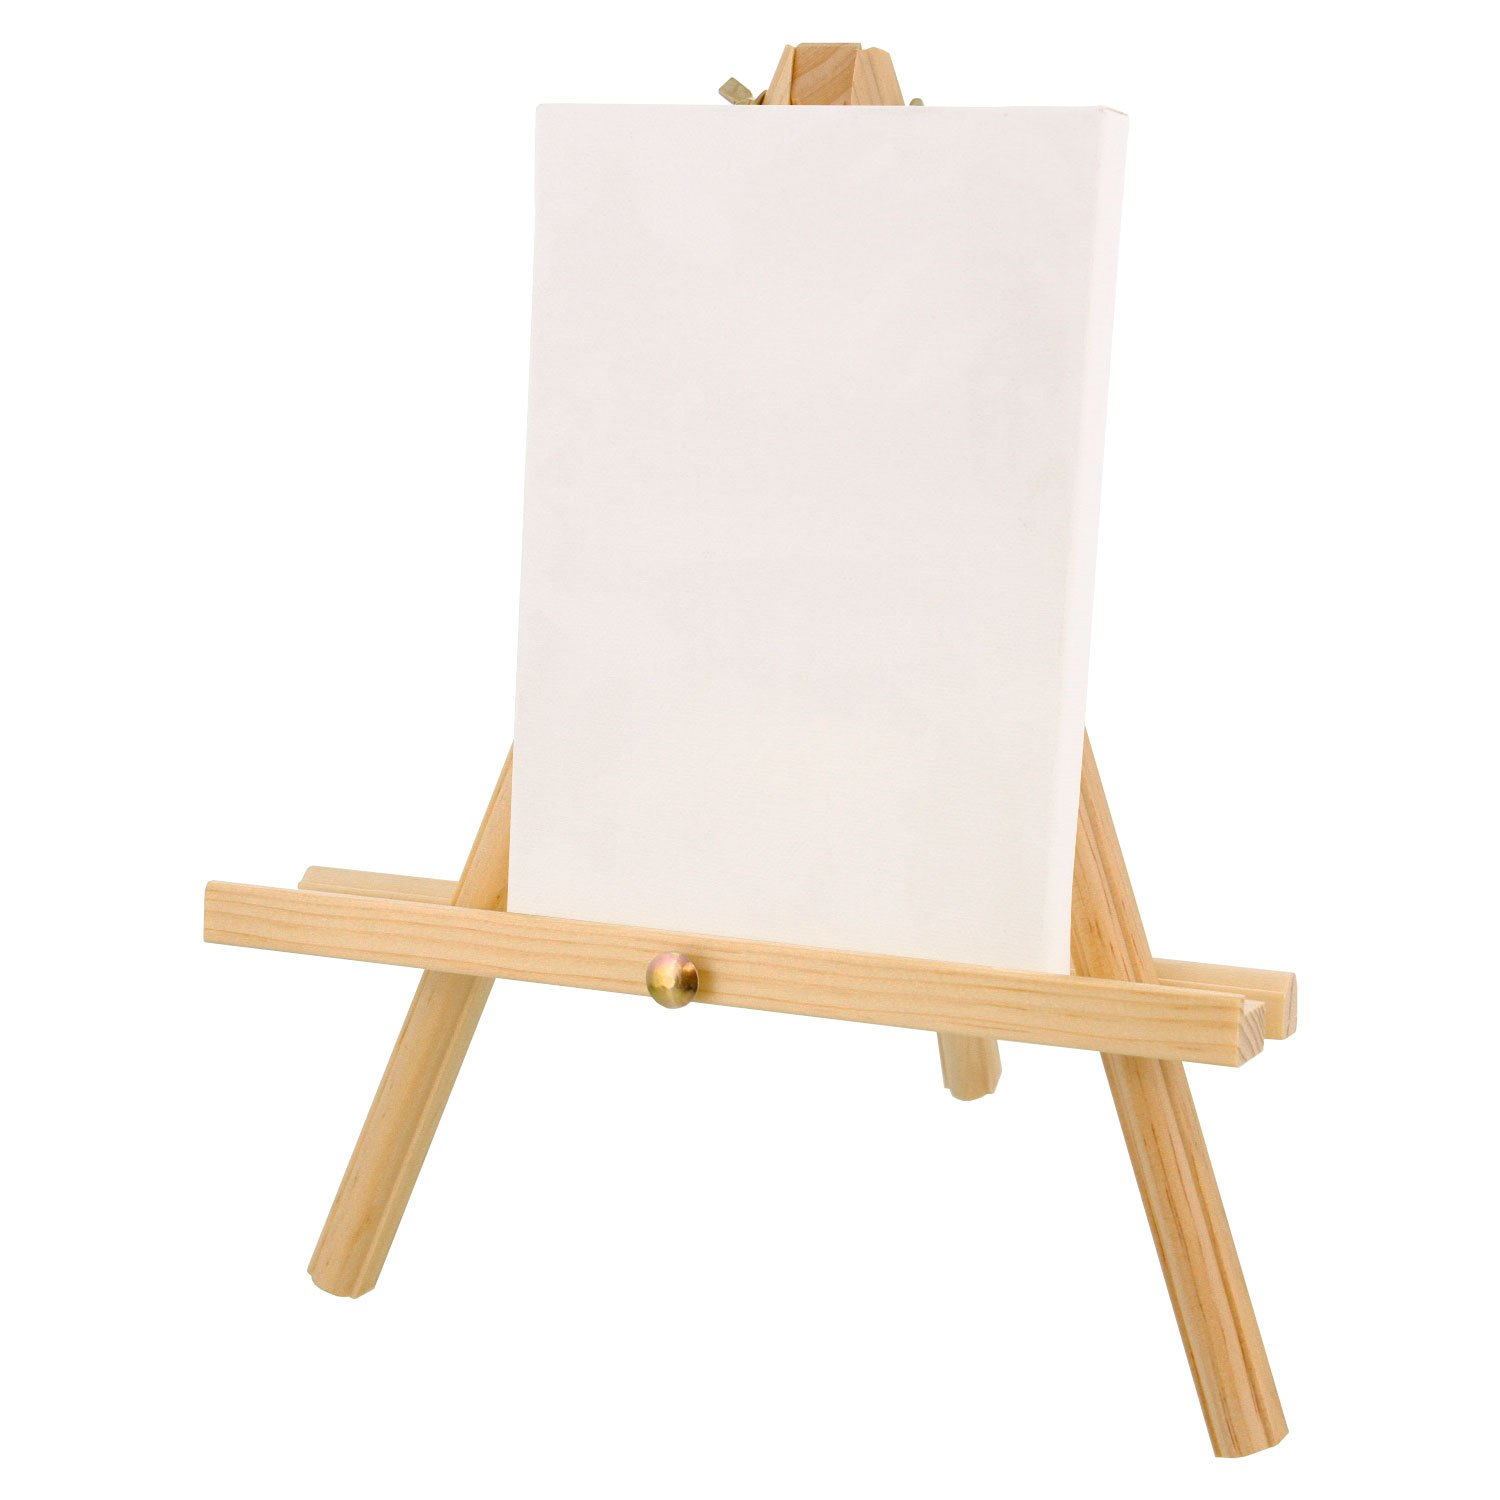 Pack of 4 Easels US Art Supply 12 inch Tall Tripod Easel Natural Pine Wood